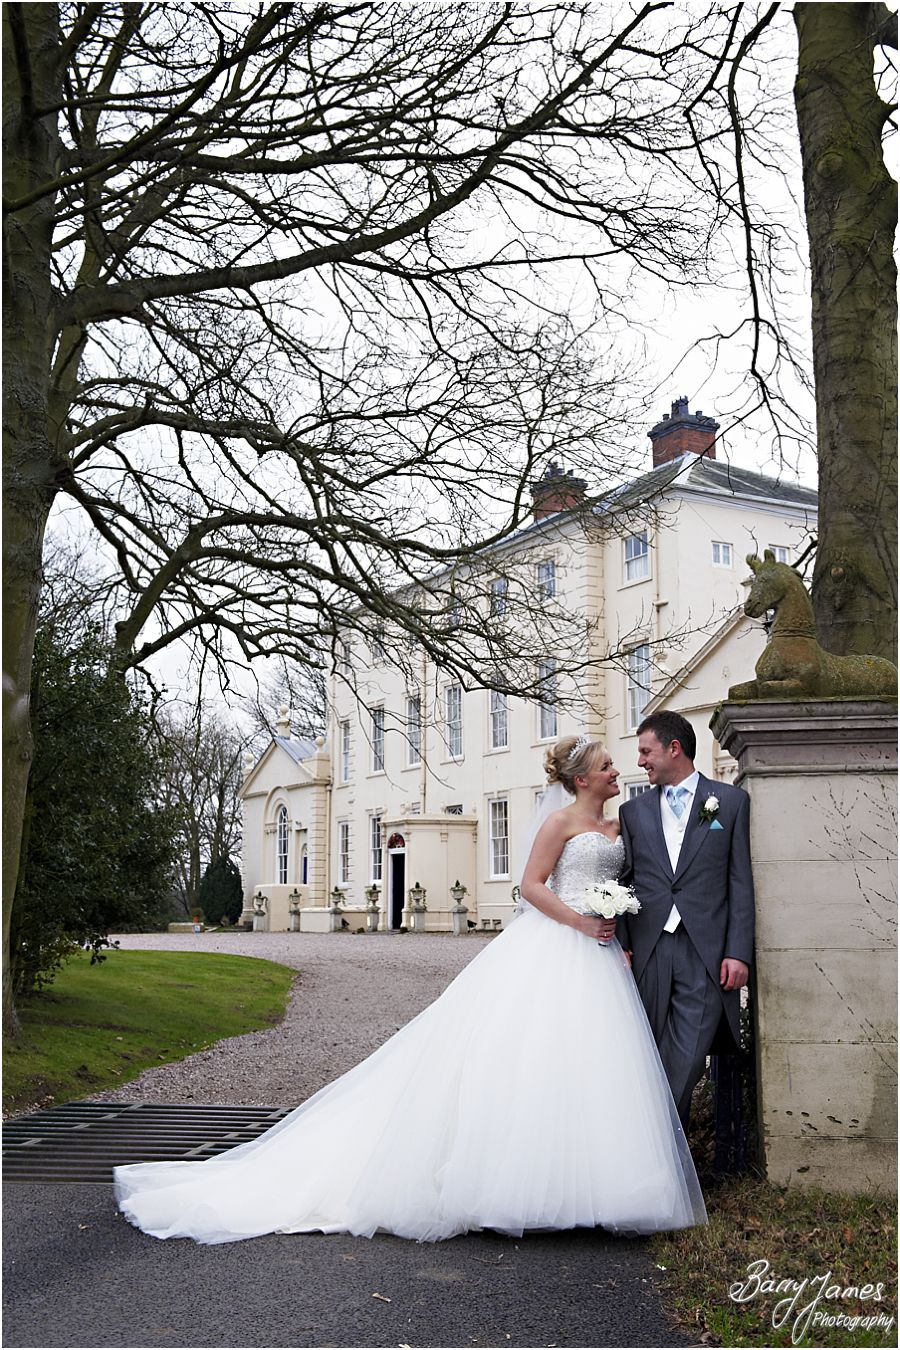 Storybook storytelling wedding photography of a winter weddings at Somerford Hall in Brewood by Staffordshire Wedding Photographers Barry James